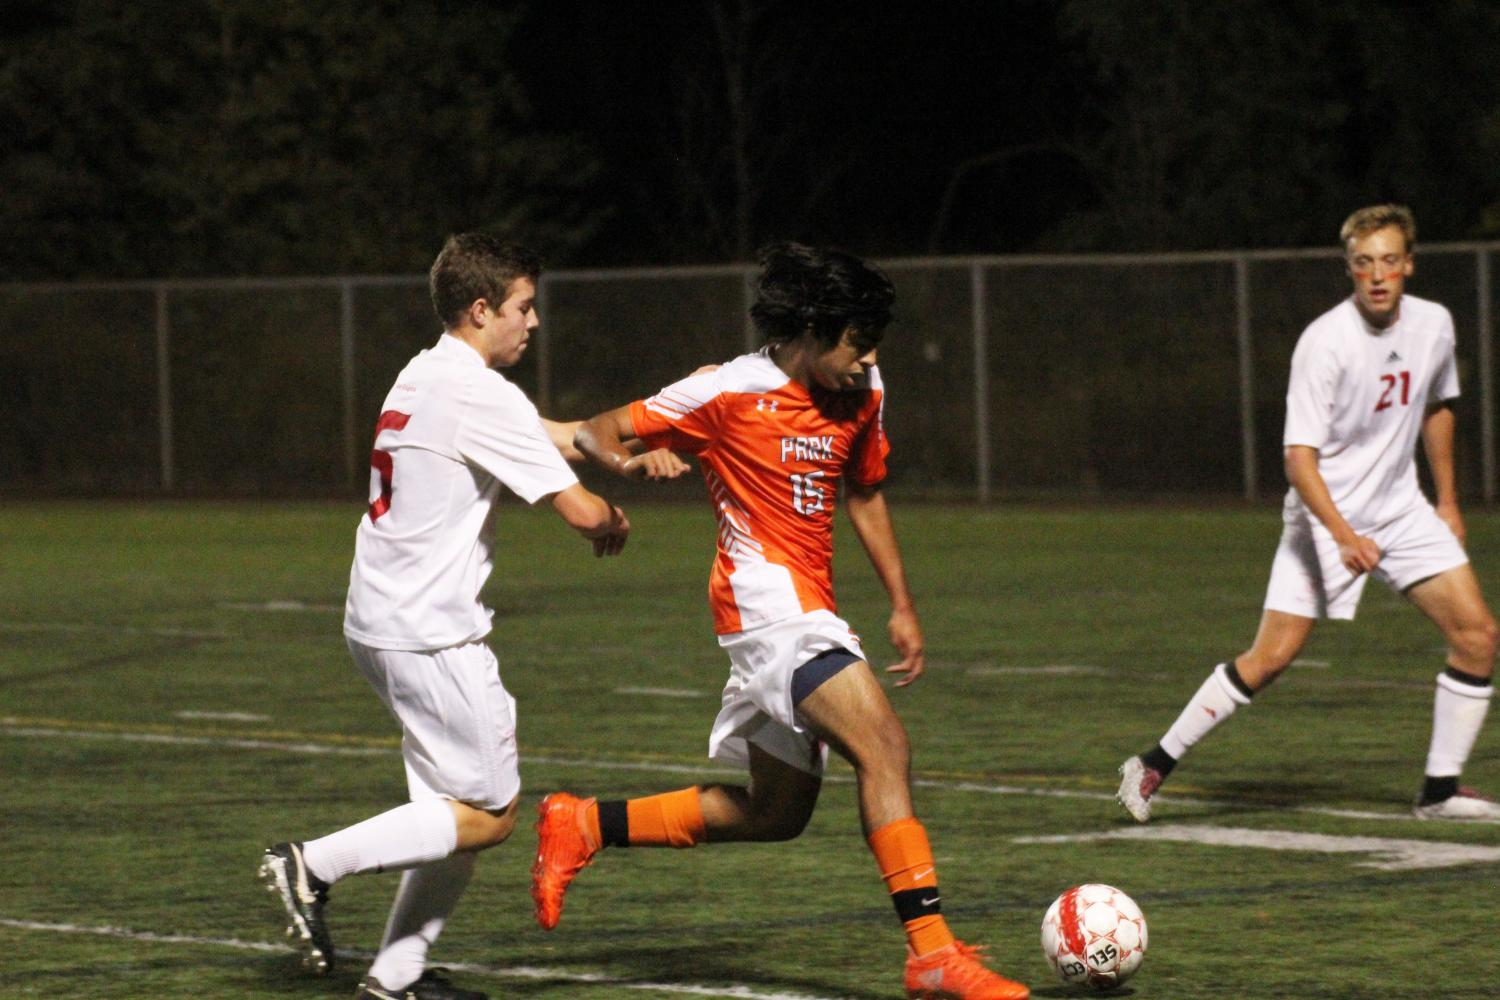 Junior Fabio Leyva dribbles past a Benilde-St. Margaret's player during the Oct. 5 game. Park won the game 2-0, putting the boys' varsity team in first place in their conference.